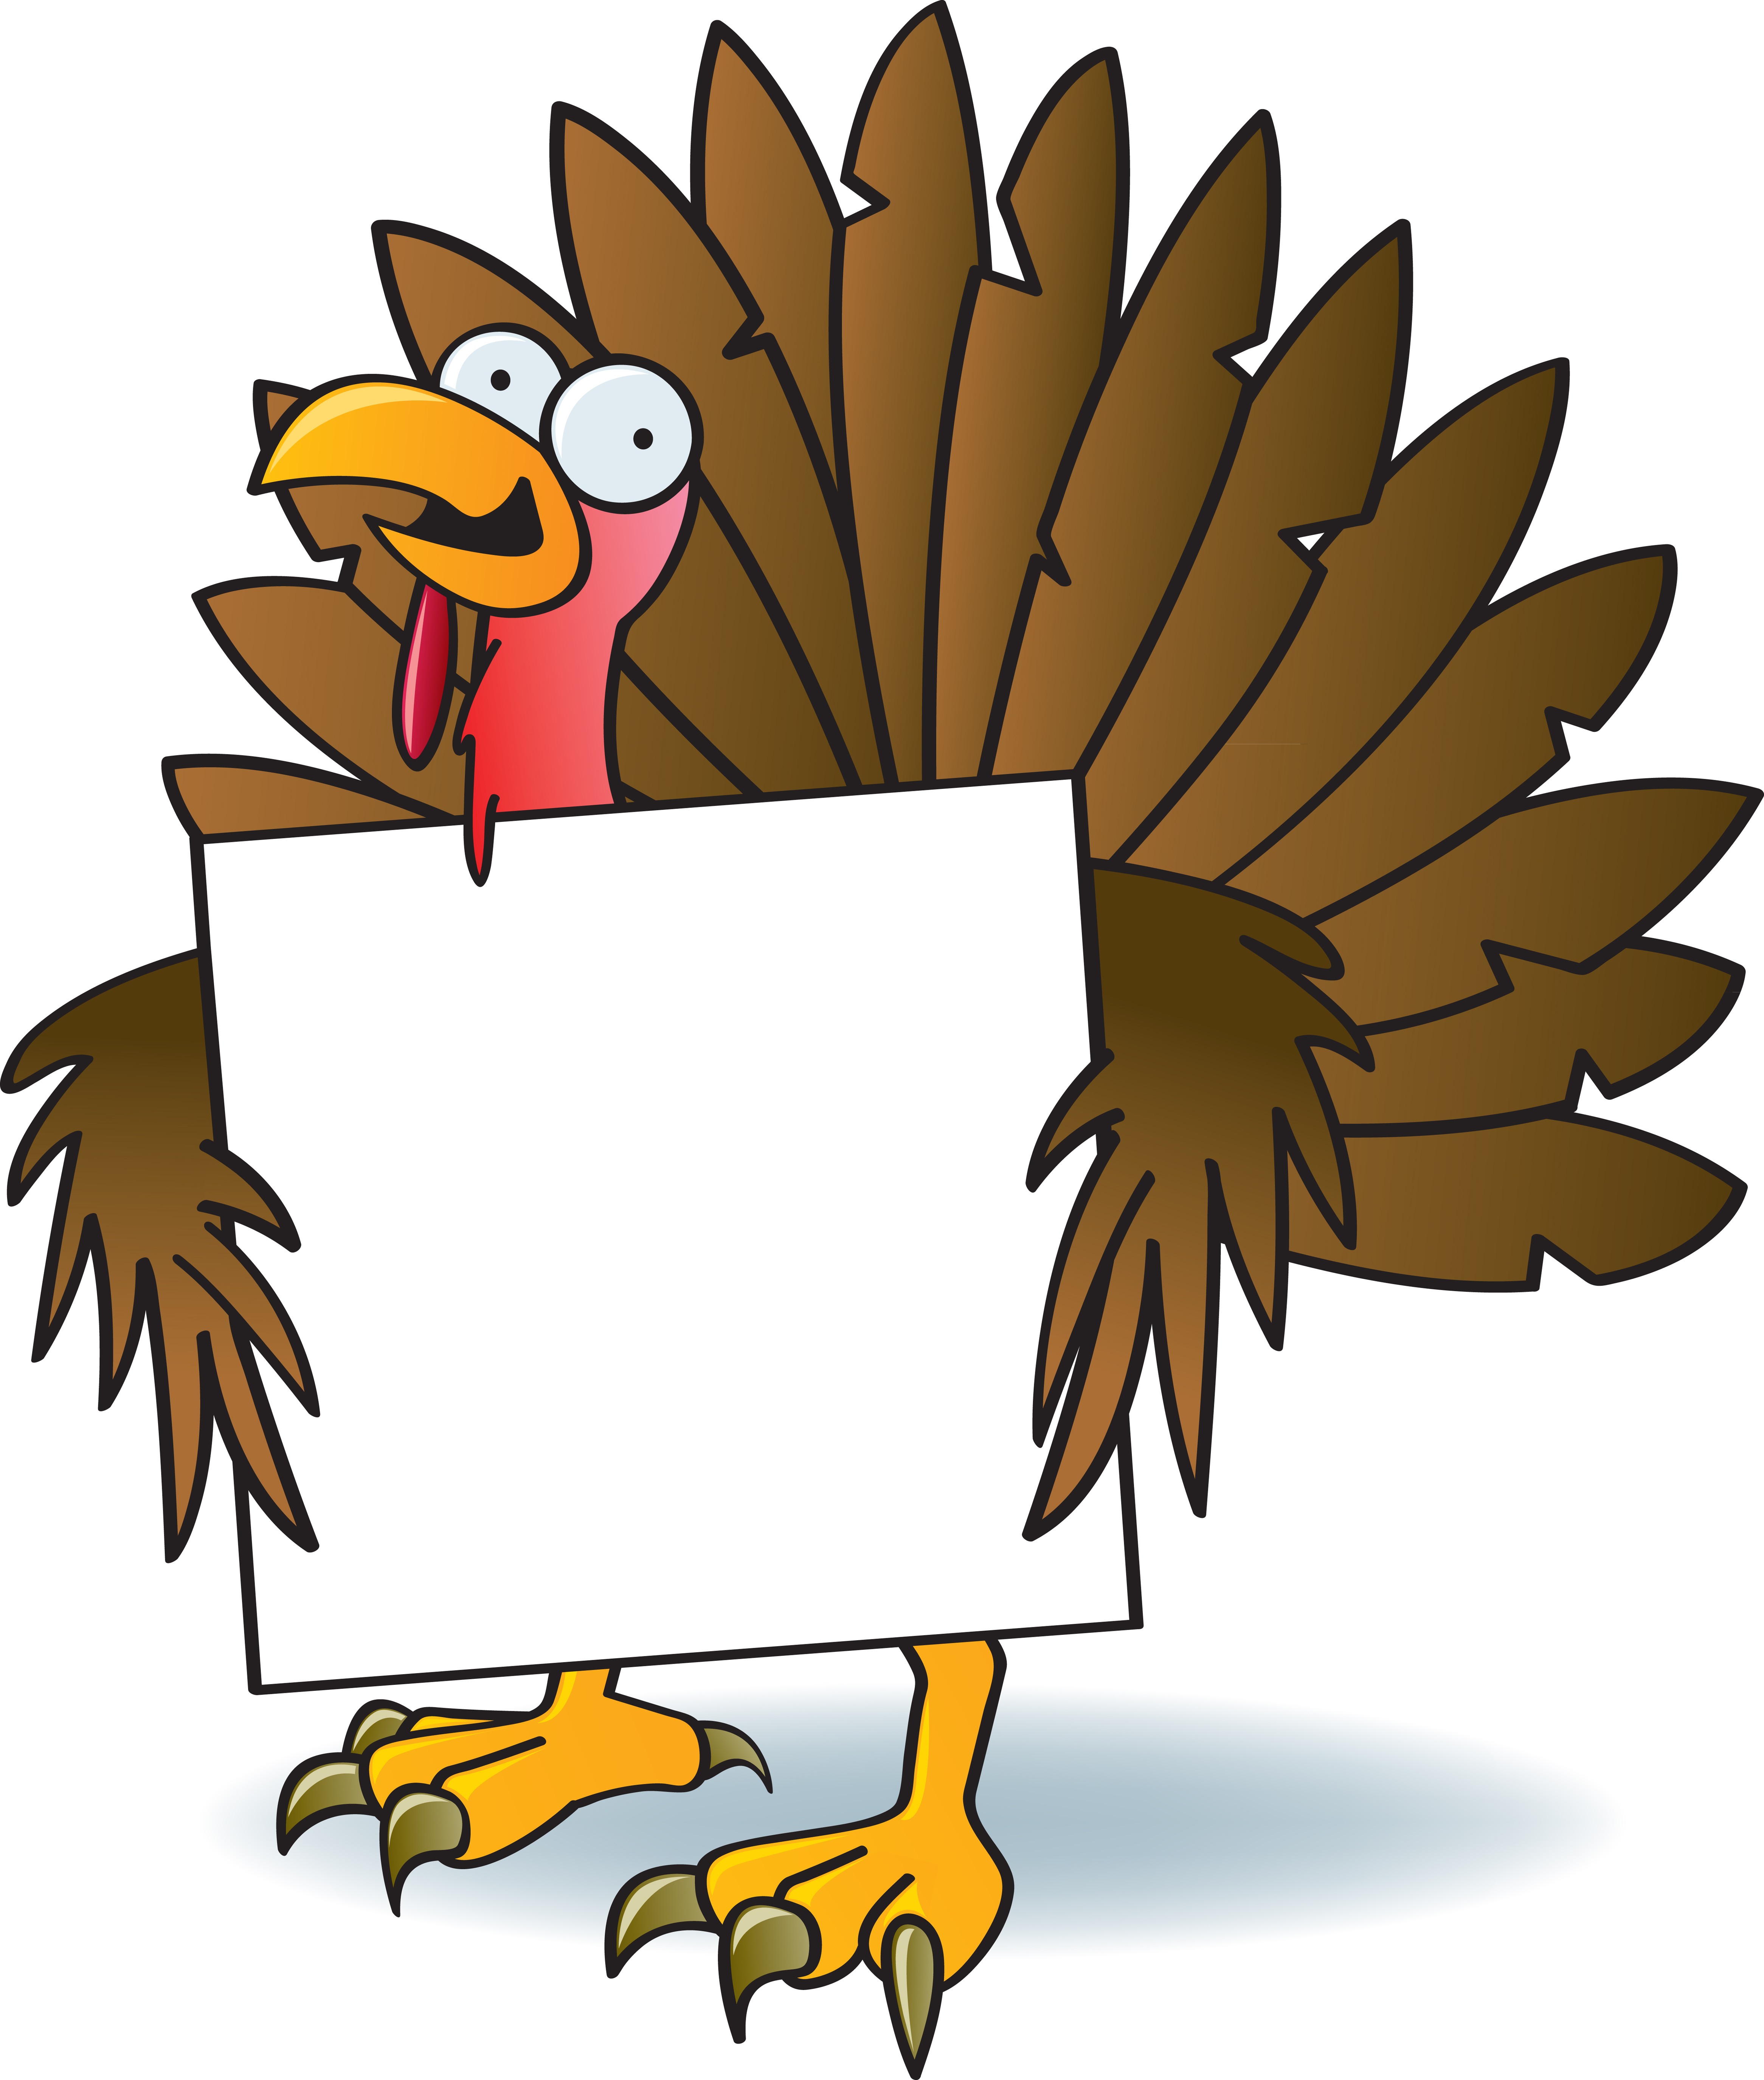 Free Funny Cartoon Turkeys, Download Free Clip Art, Free Clip Art on.